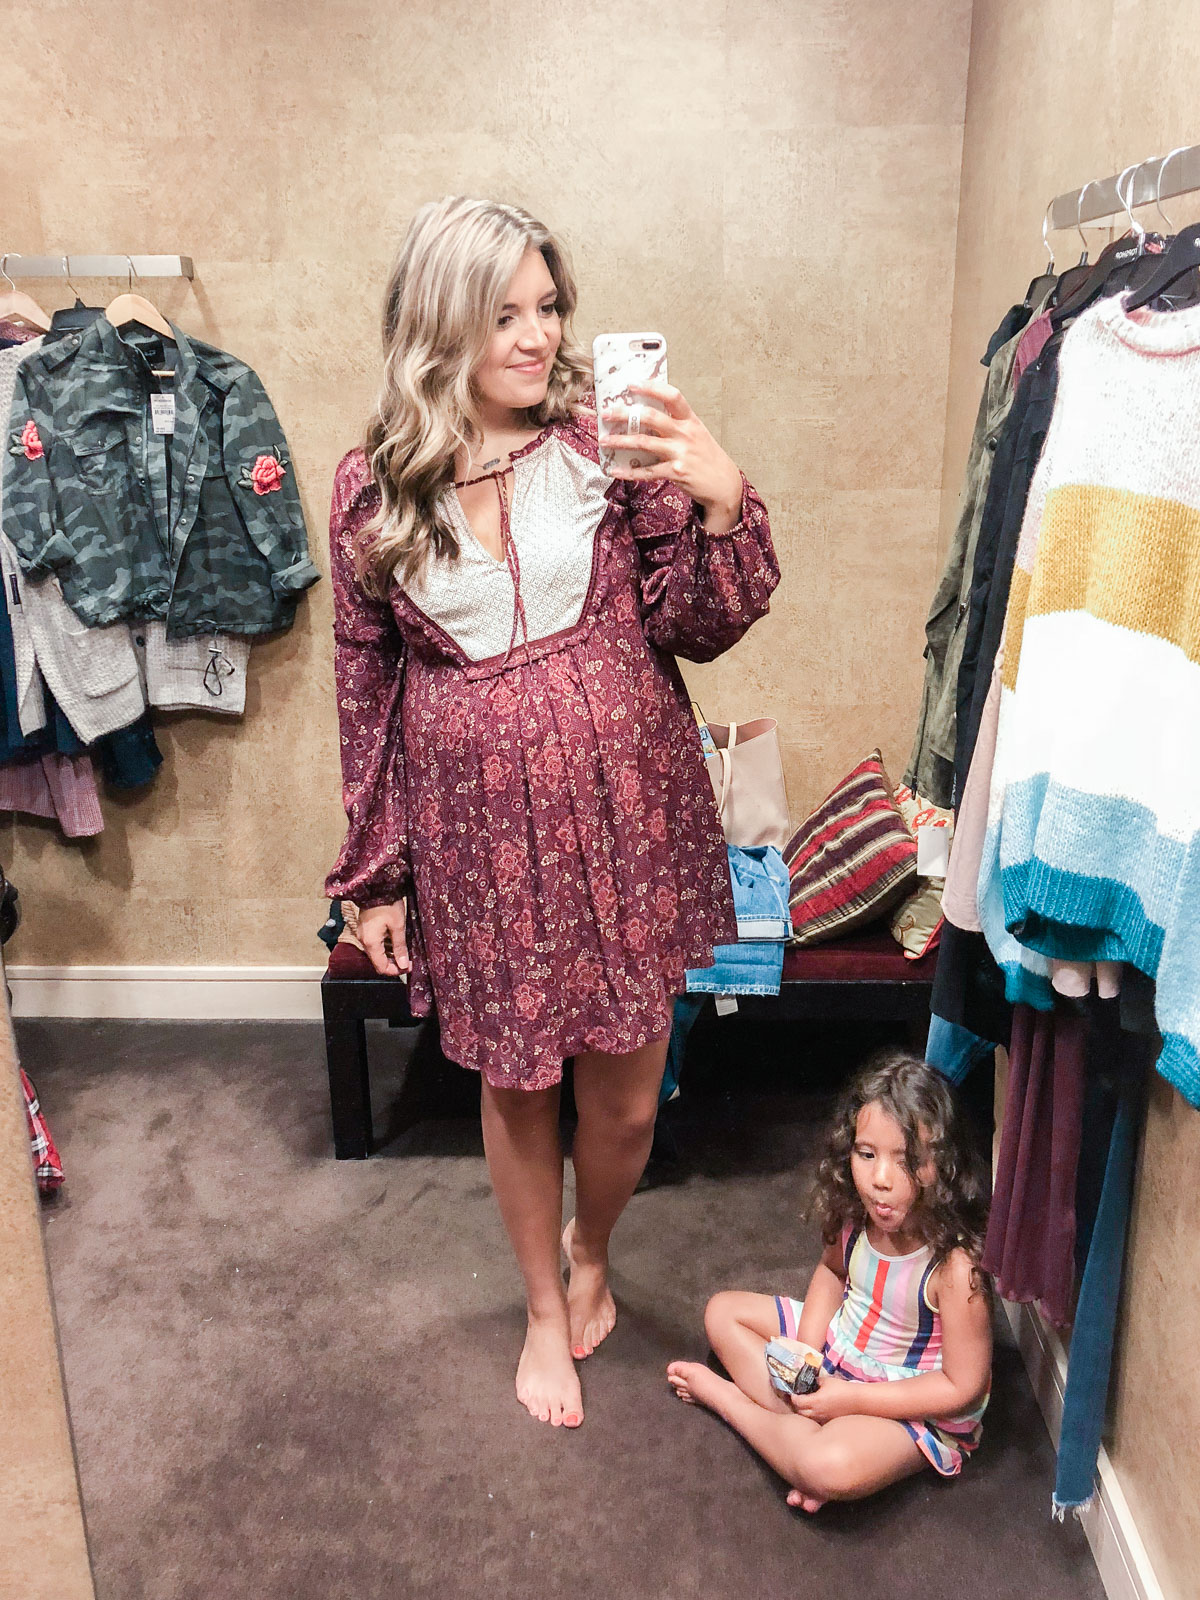 Hinge printed dress - Nordstrom anniversary sale 2018 try-on session: over 25 items reviewed for fit and size! | bylaurenm.com